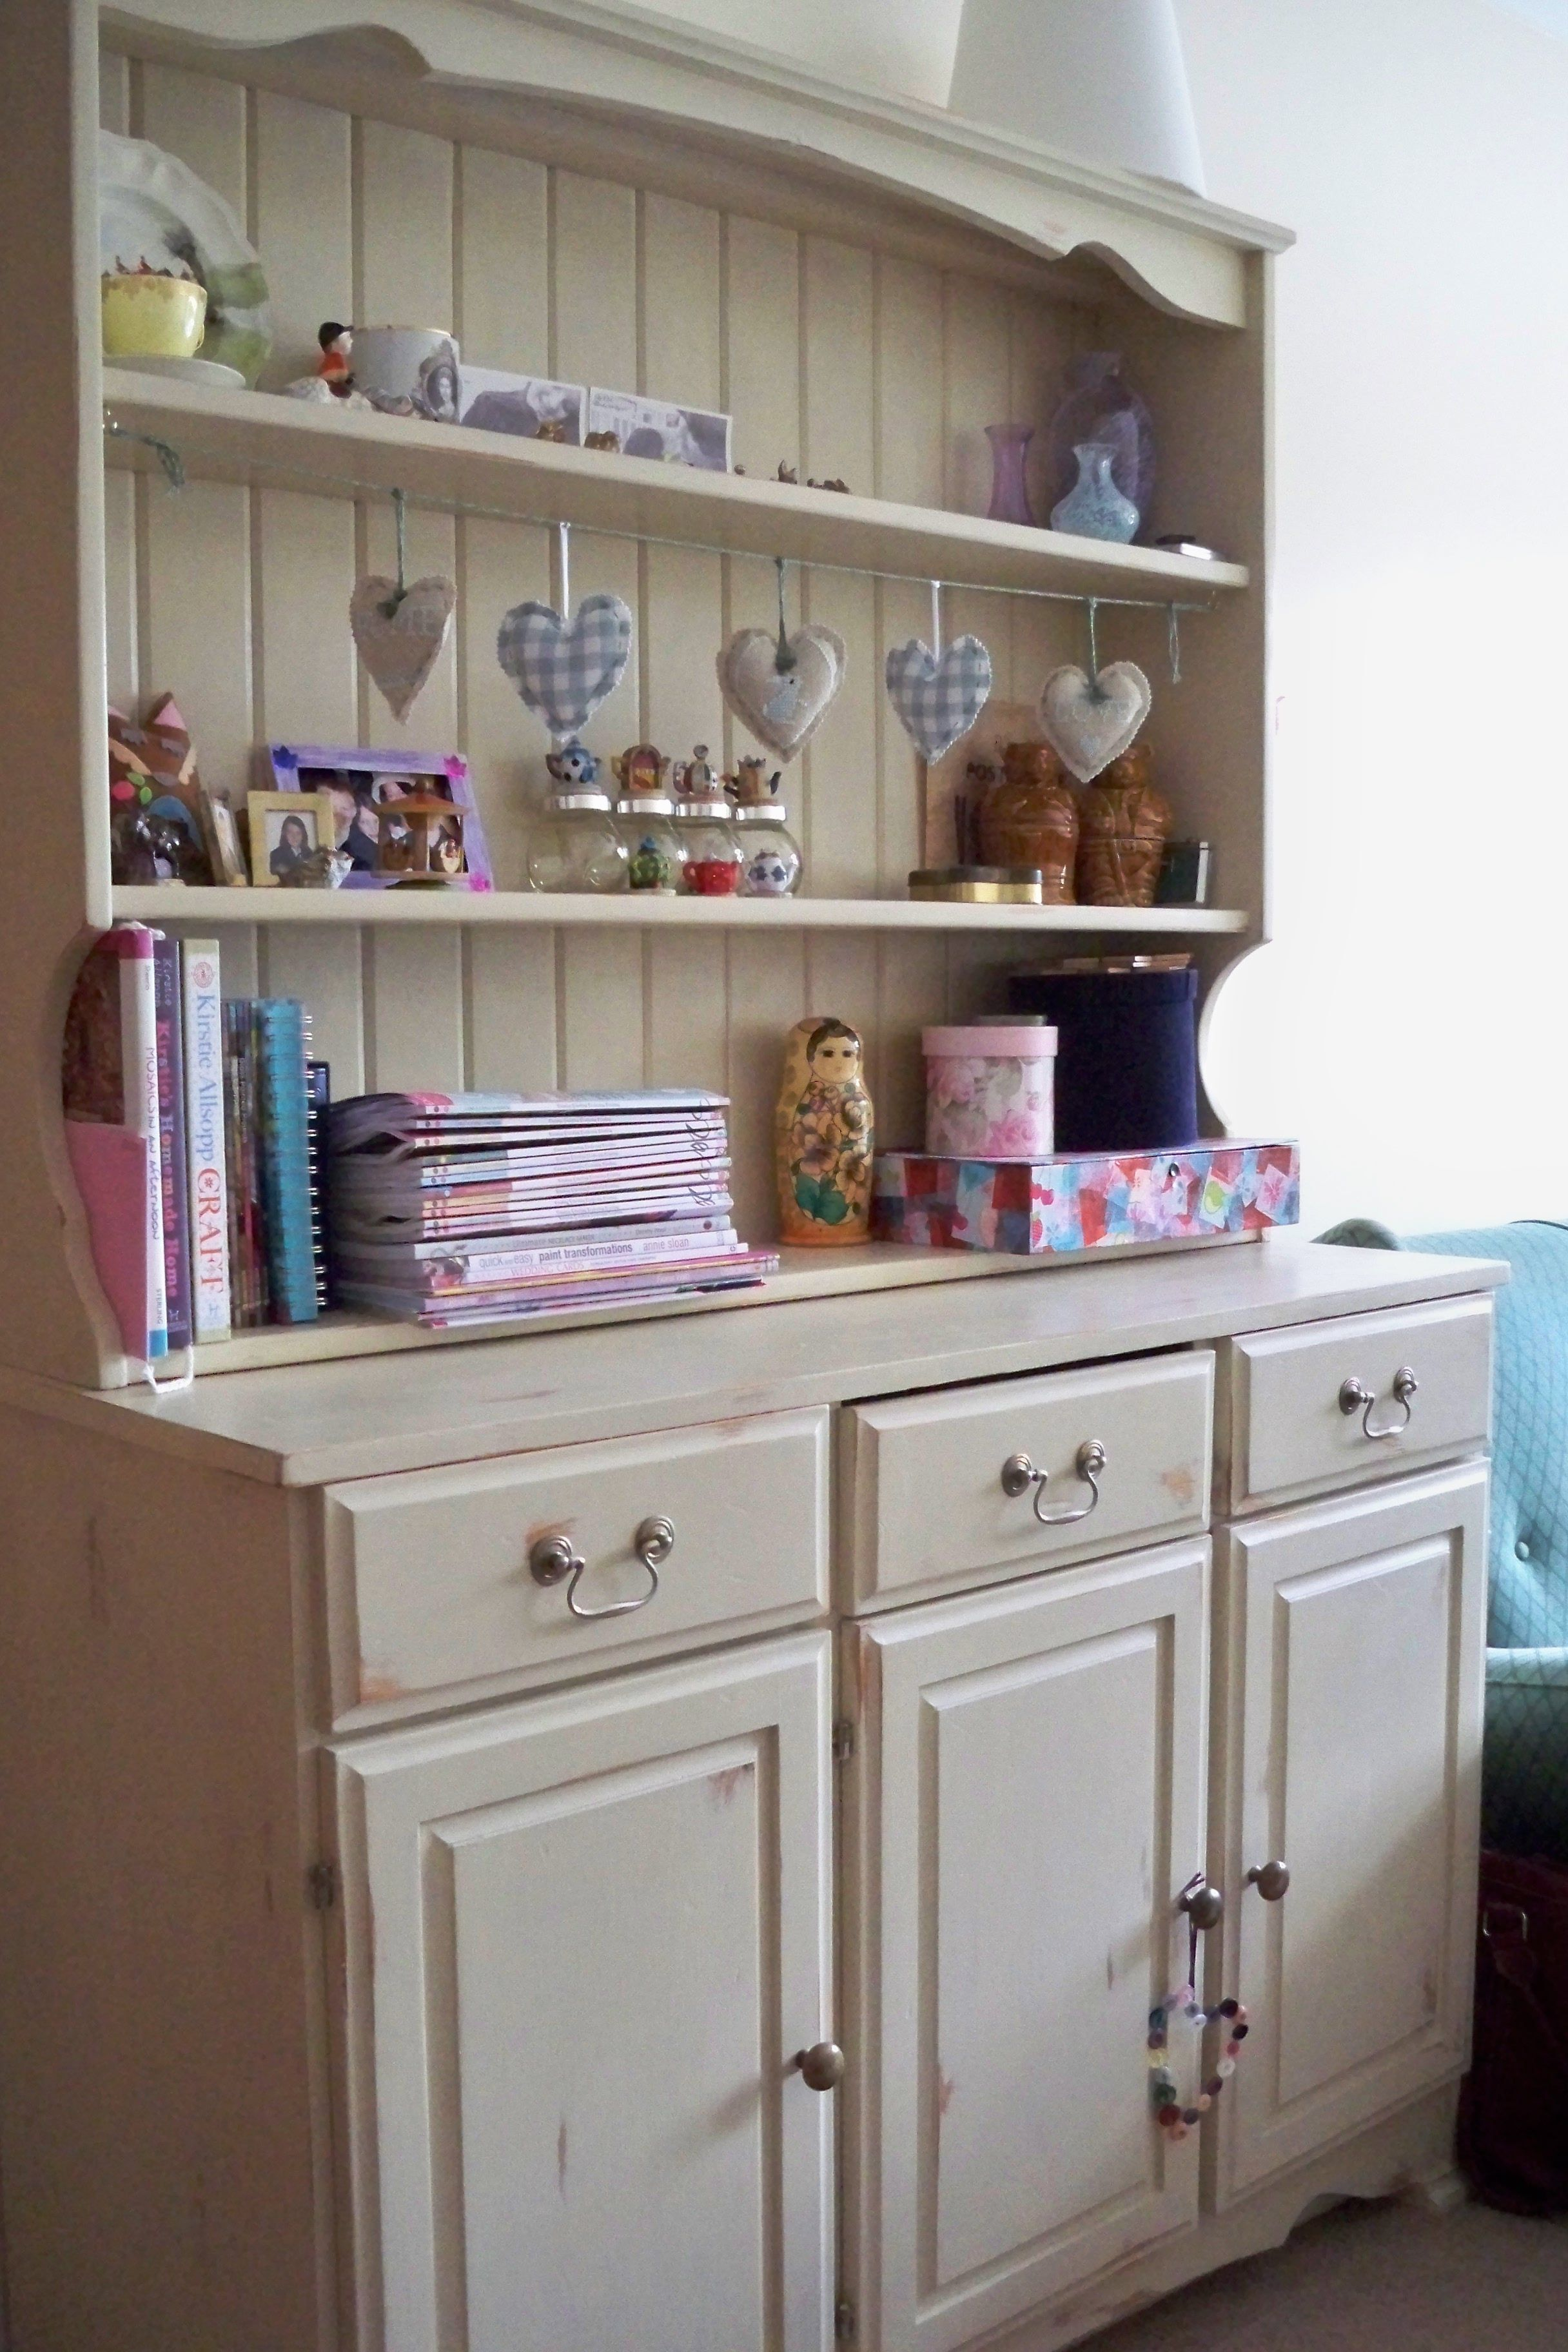 A Donated Pine Dresser Shabby Chic D By Me Using Annie Sloan Chalk Paints And Clear Wax I Love How It Turned Out Looks Perfect In My Craft Room